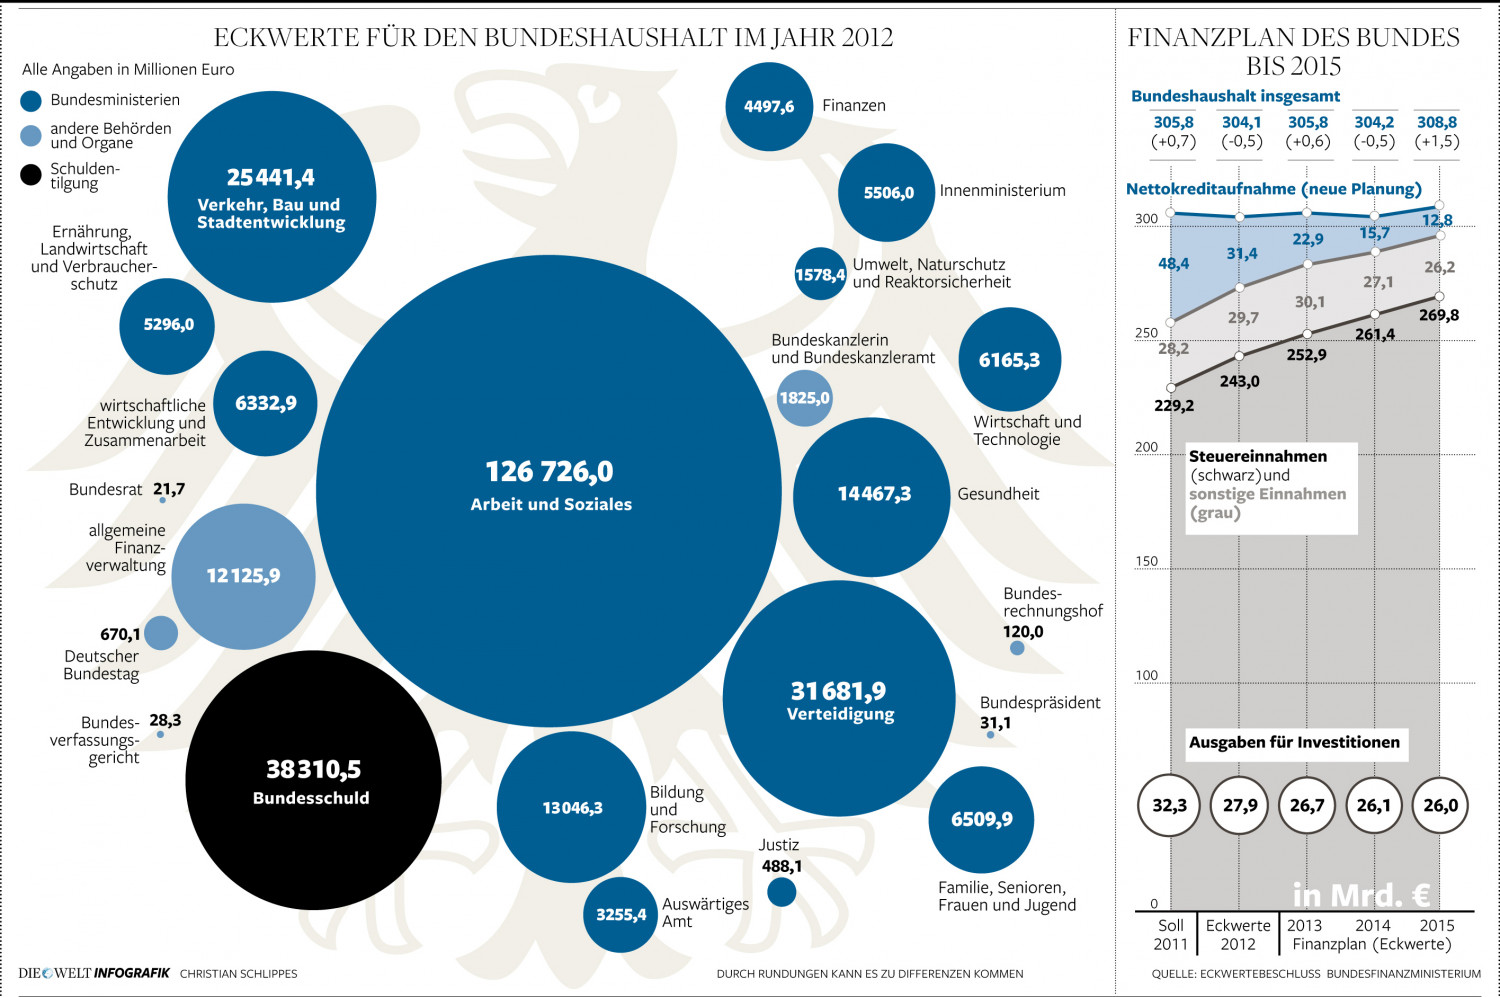 National Budget 2012 for Germany Infographic